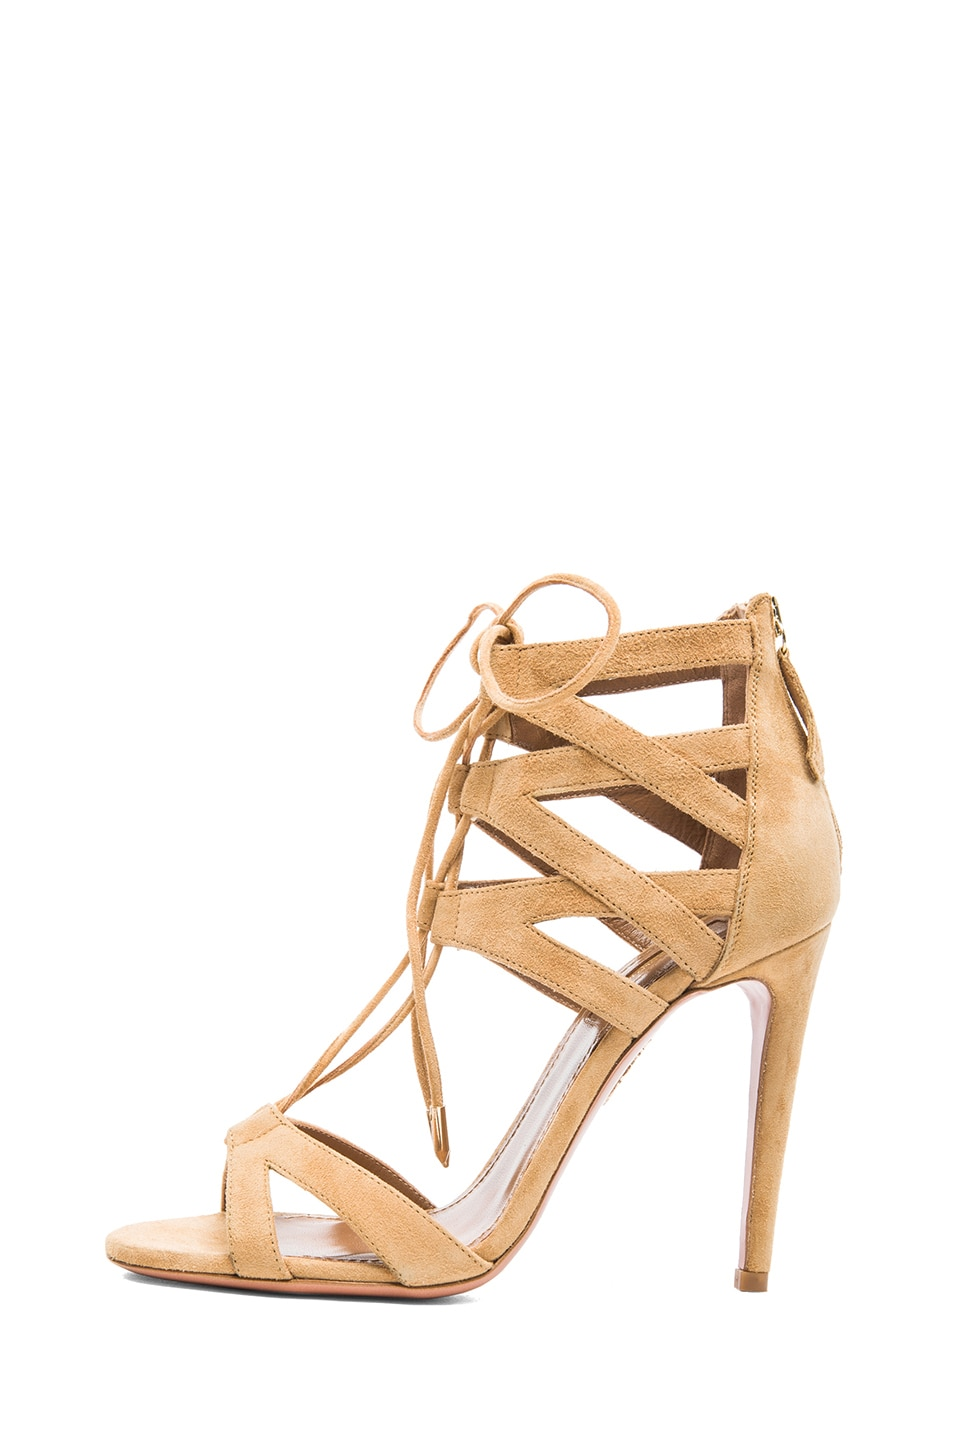 Image 1 of Aquazzura Beverly Hills Suede Sandals in Tan